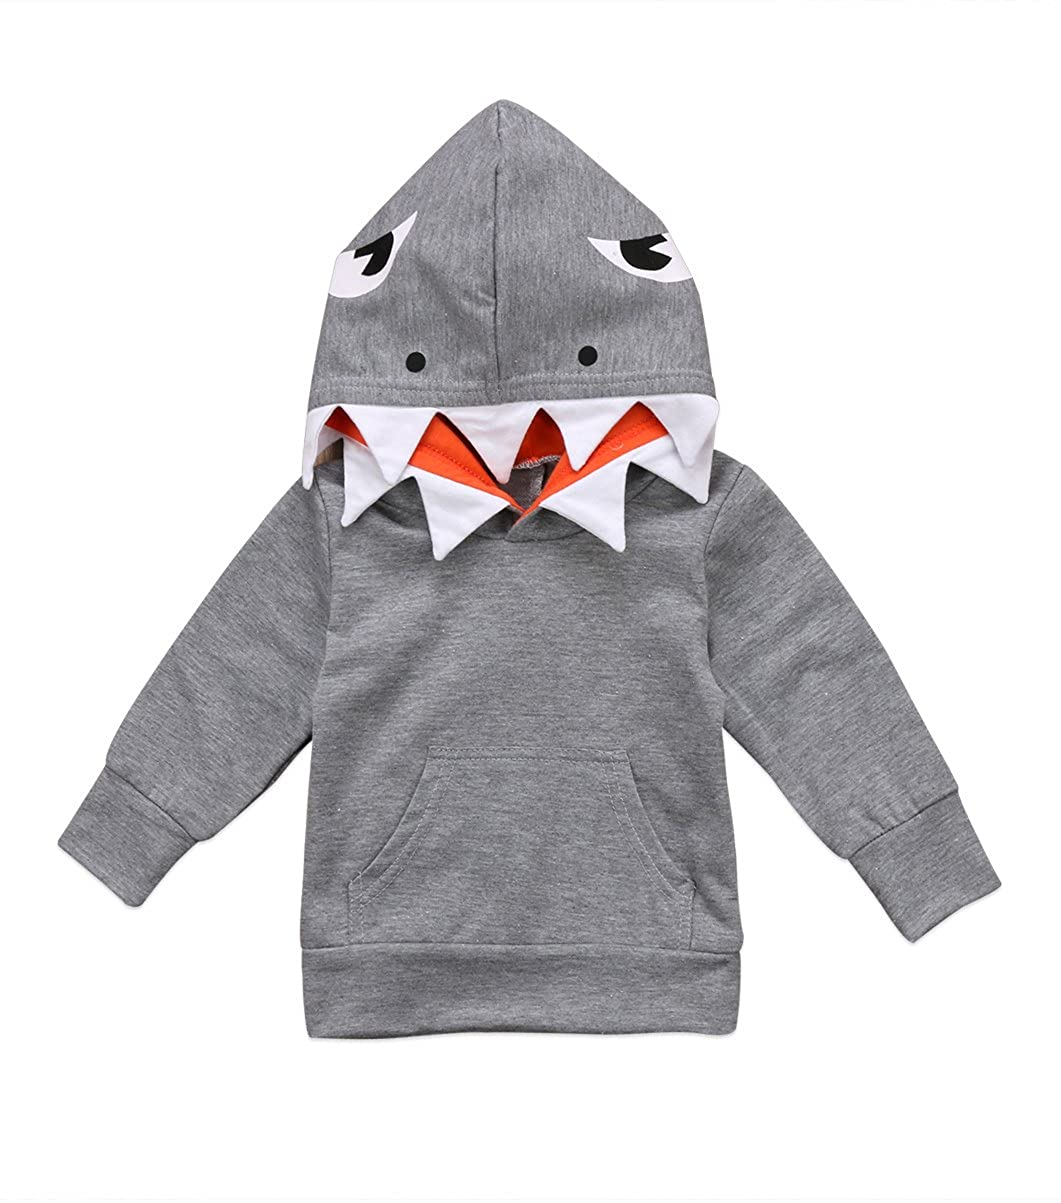 Urkutoba Unisex Baby Autumn Winter Shark Hooded Sweatshirt Infant Boys Girls Hoodies with Kangaroo Muff Pockets& Shark Fin